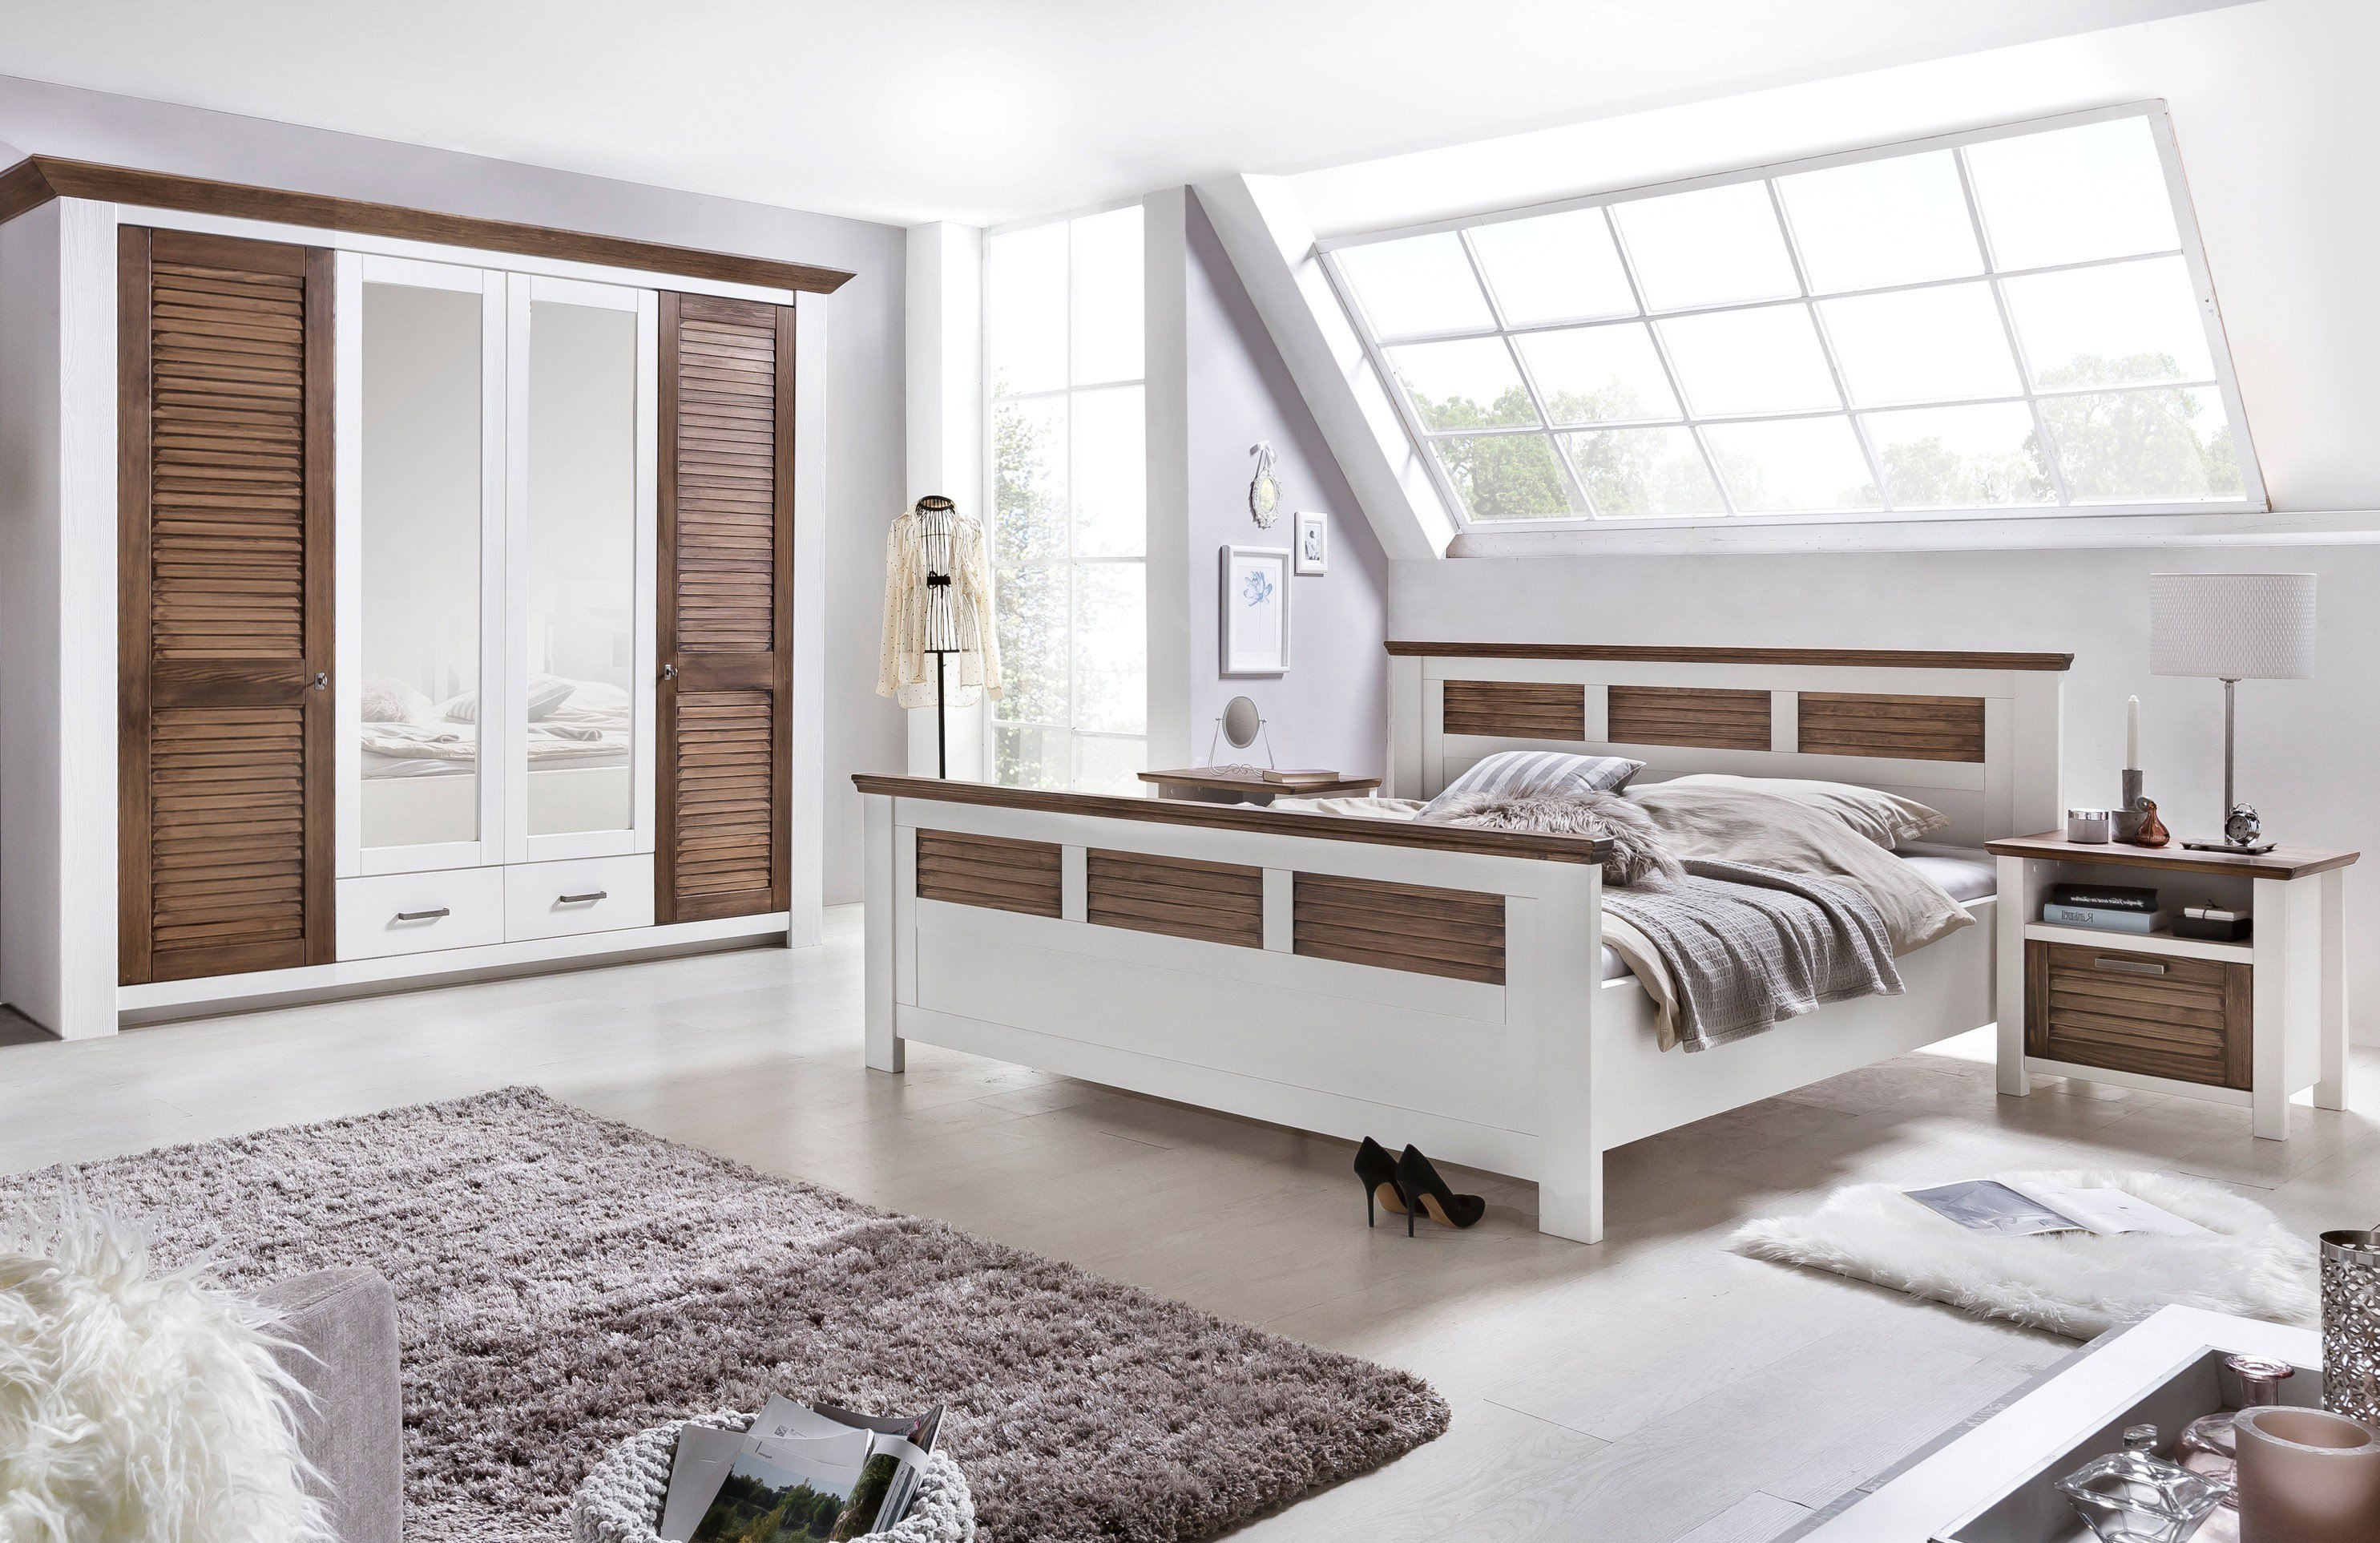 laguna telmex schlafzimmer set pinie wei m bel letz ihr online shop. Black Bedroom Furniture Sets. Home Design Ideas